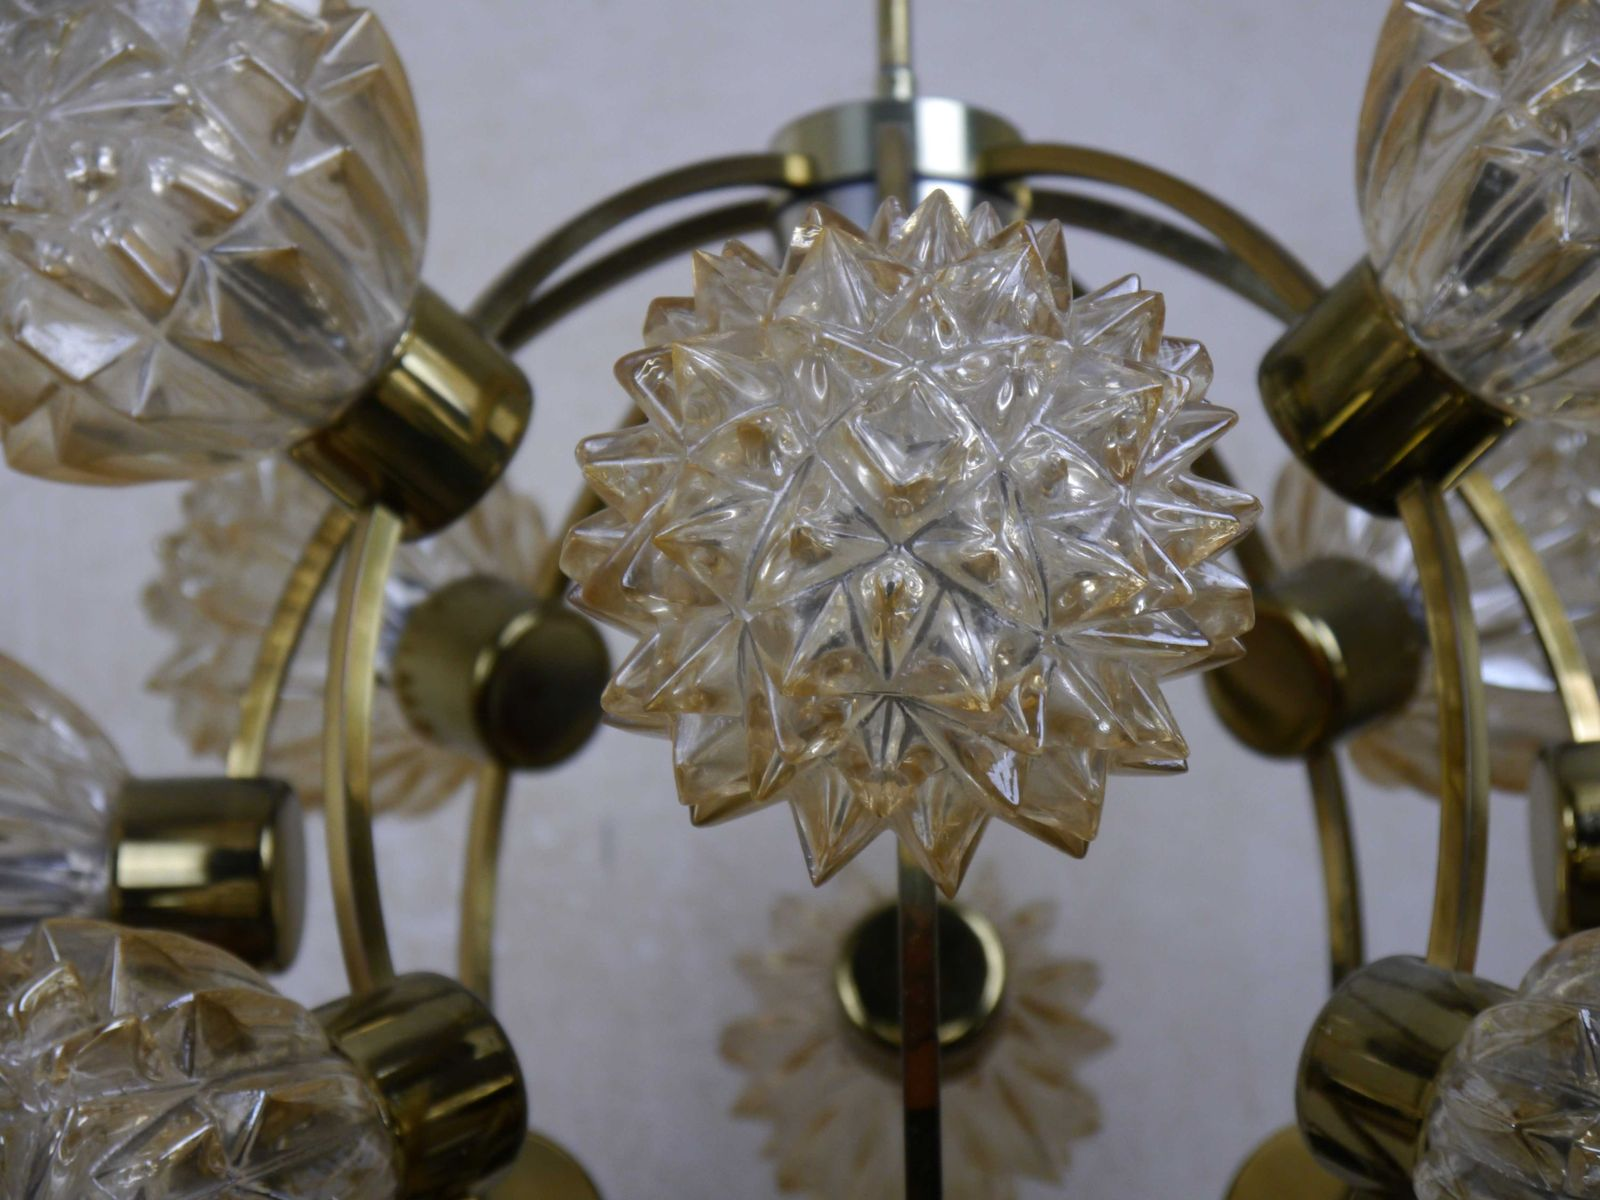 Starburst Amber Glass & Crystal Orbit Ball Chandelier 1970s for